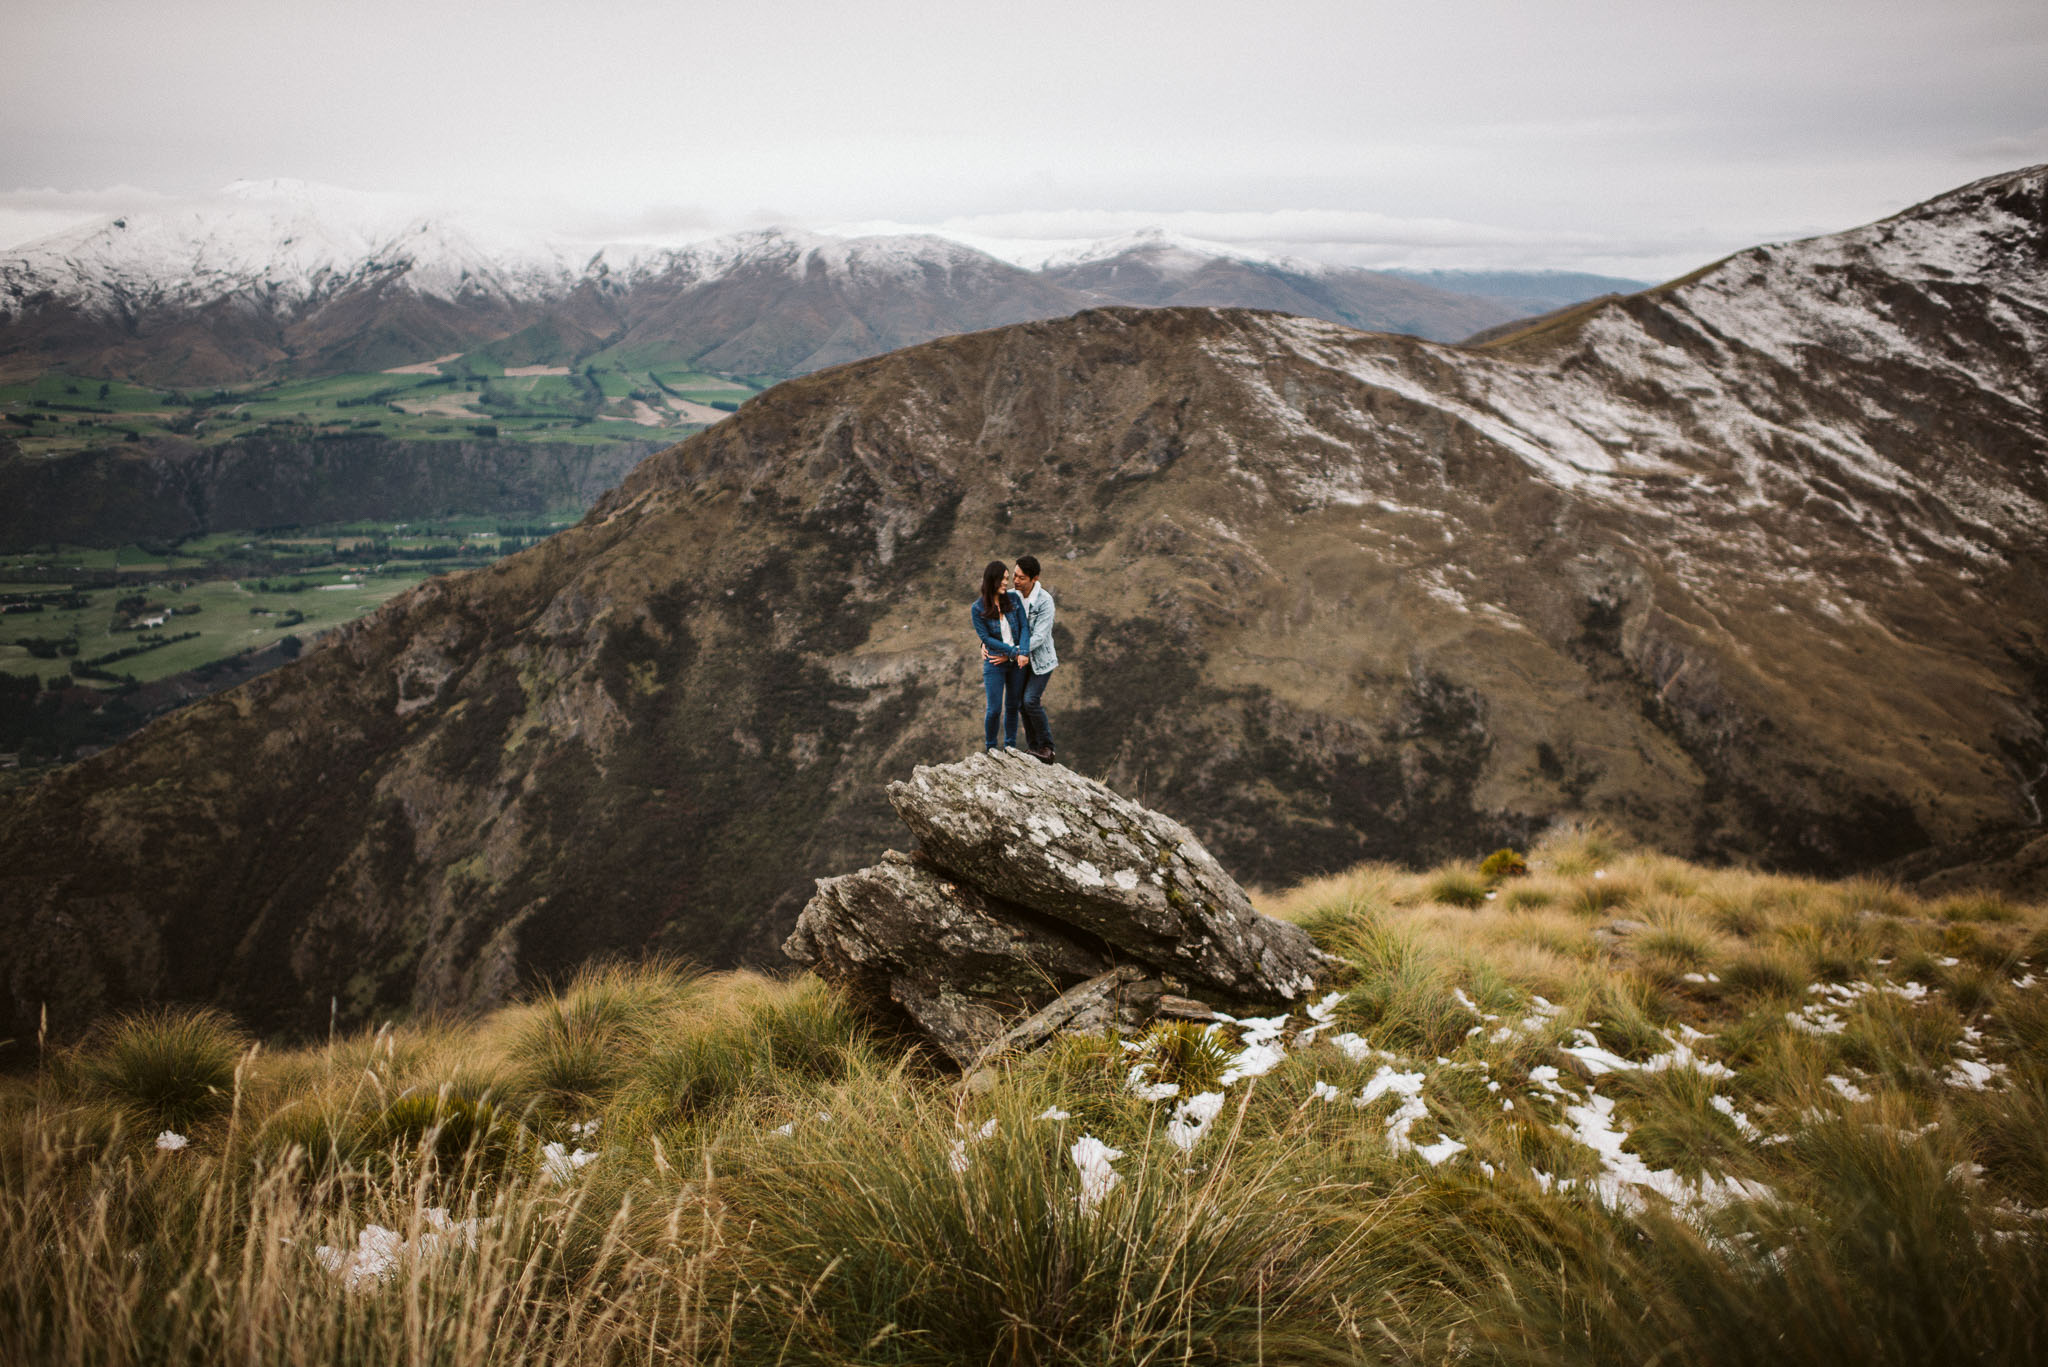 QUEENSTOWN  Explore the popular breath-taking Queenstown region from up in the lofty mountains, overlooking the Wakatipu basin that stretch over into the rugged canyons and out to the lake shores.